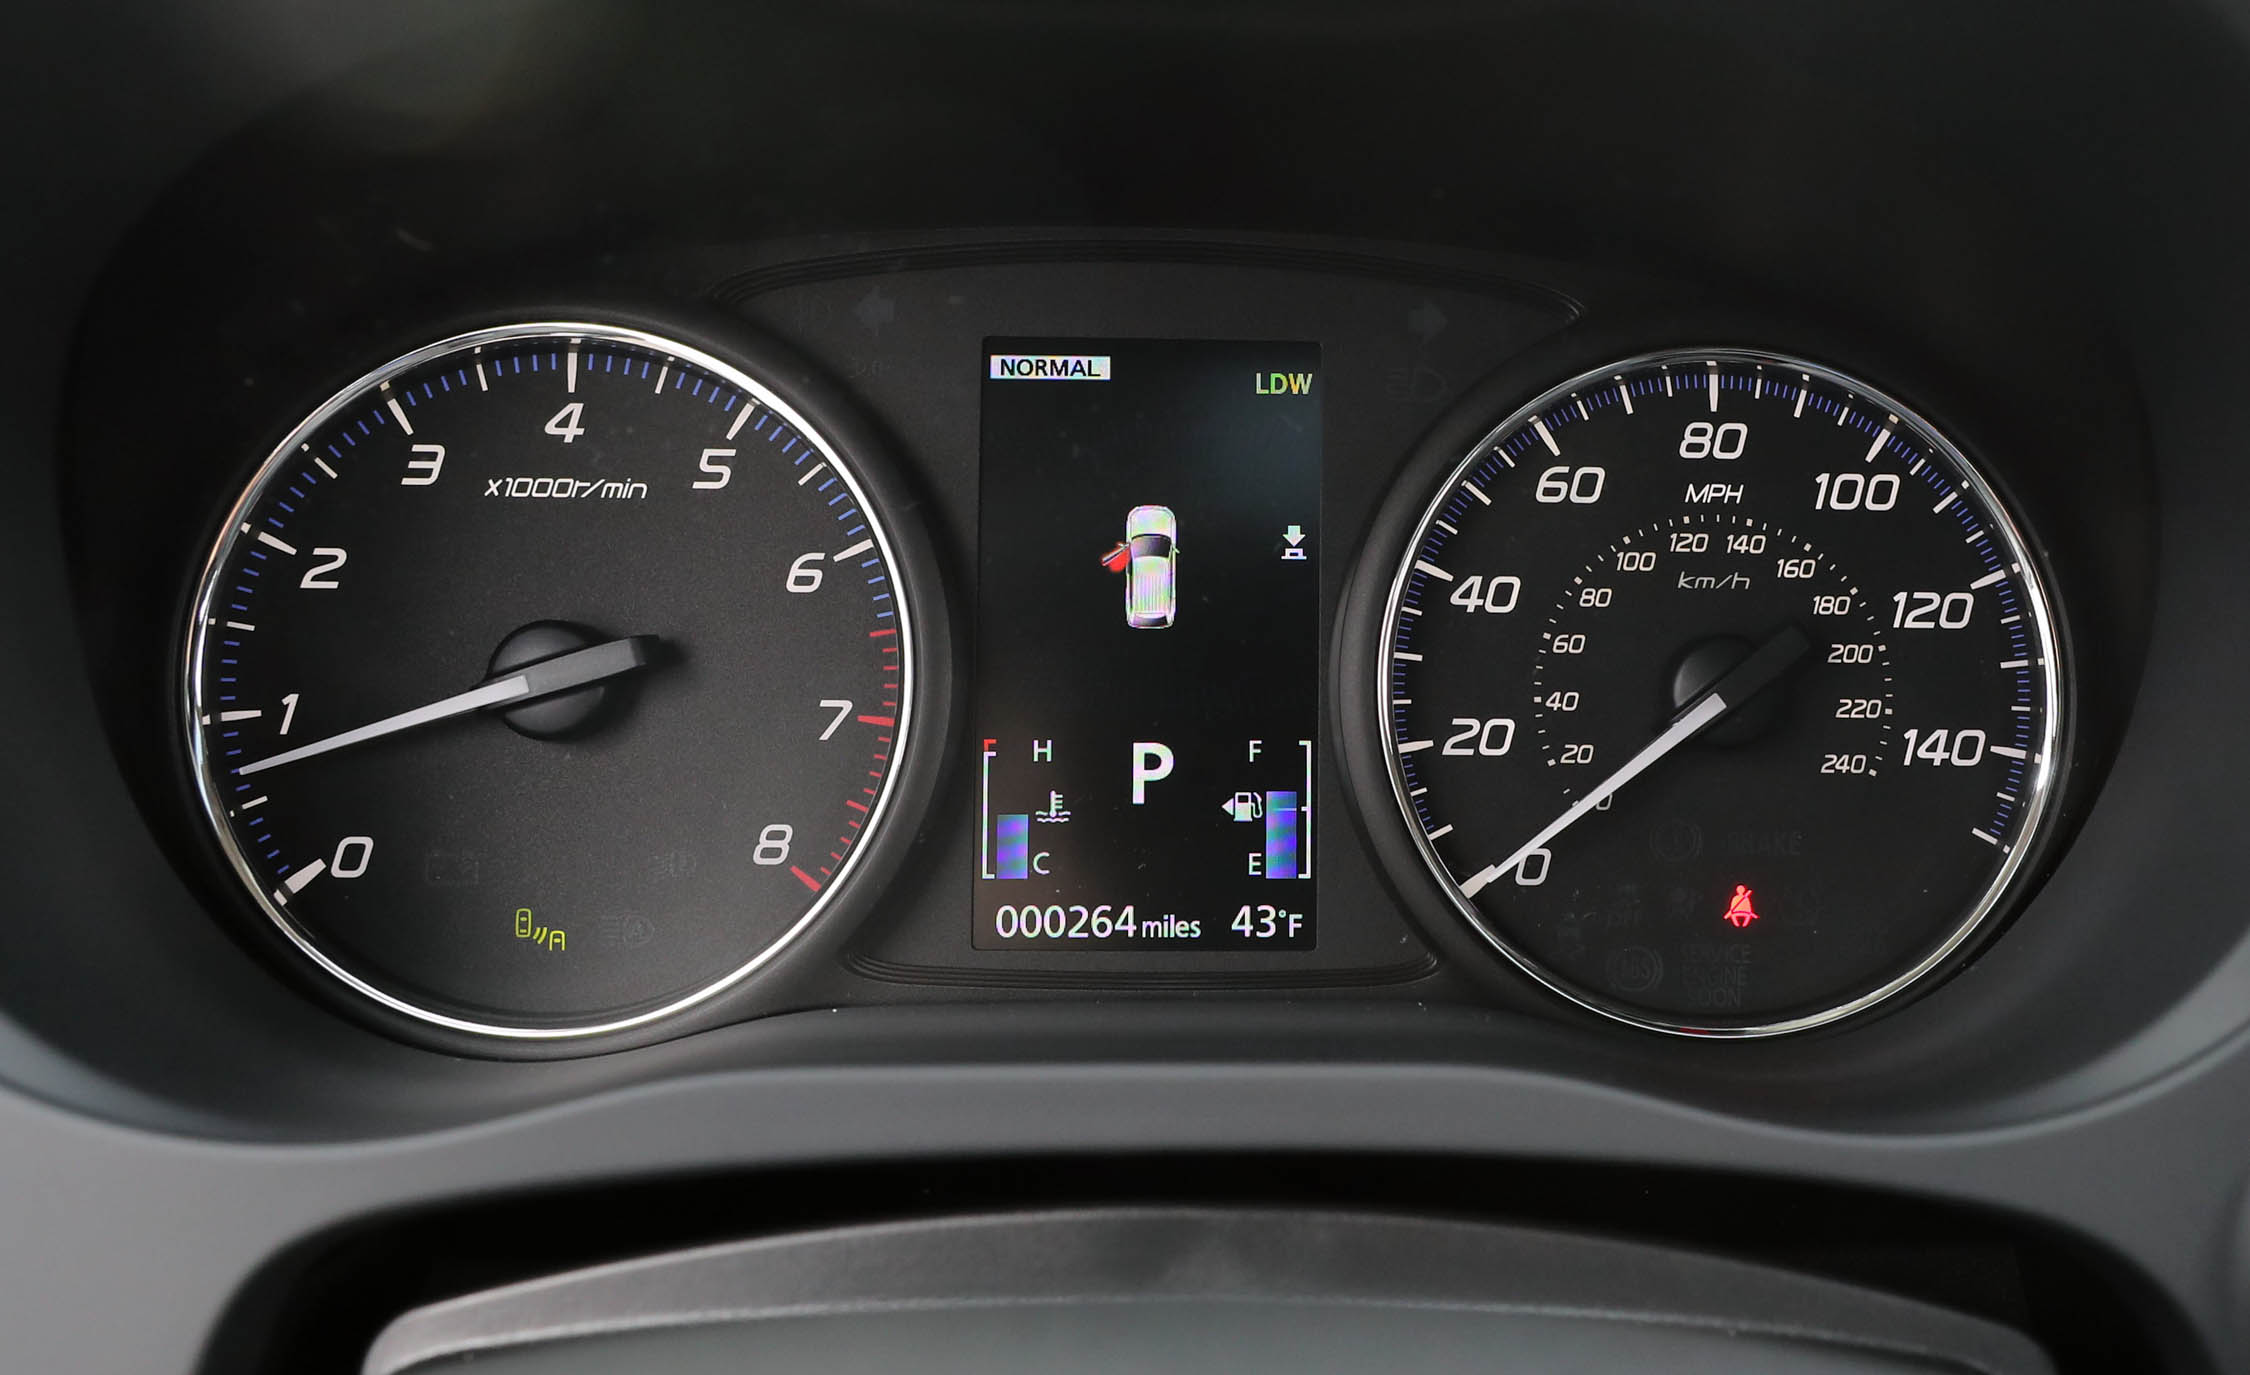 2017 Mitsubishi Outlander Gt Interior View Speedometer And Instrument Cluster (View 14 of 34)